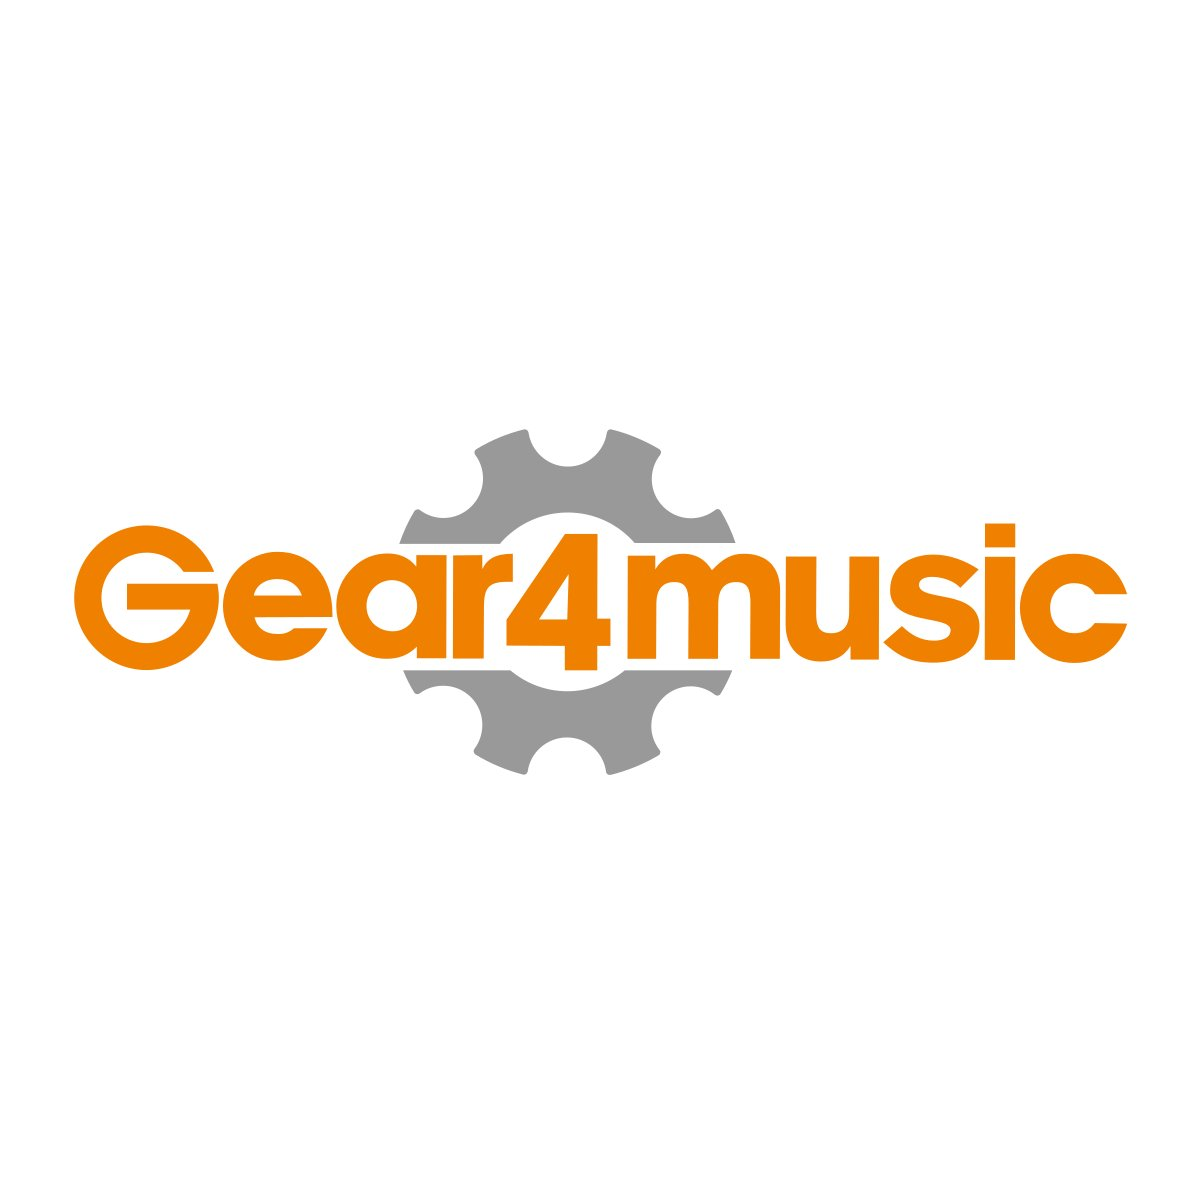 Rumpujakkara, Gear4music